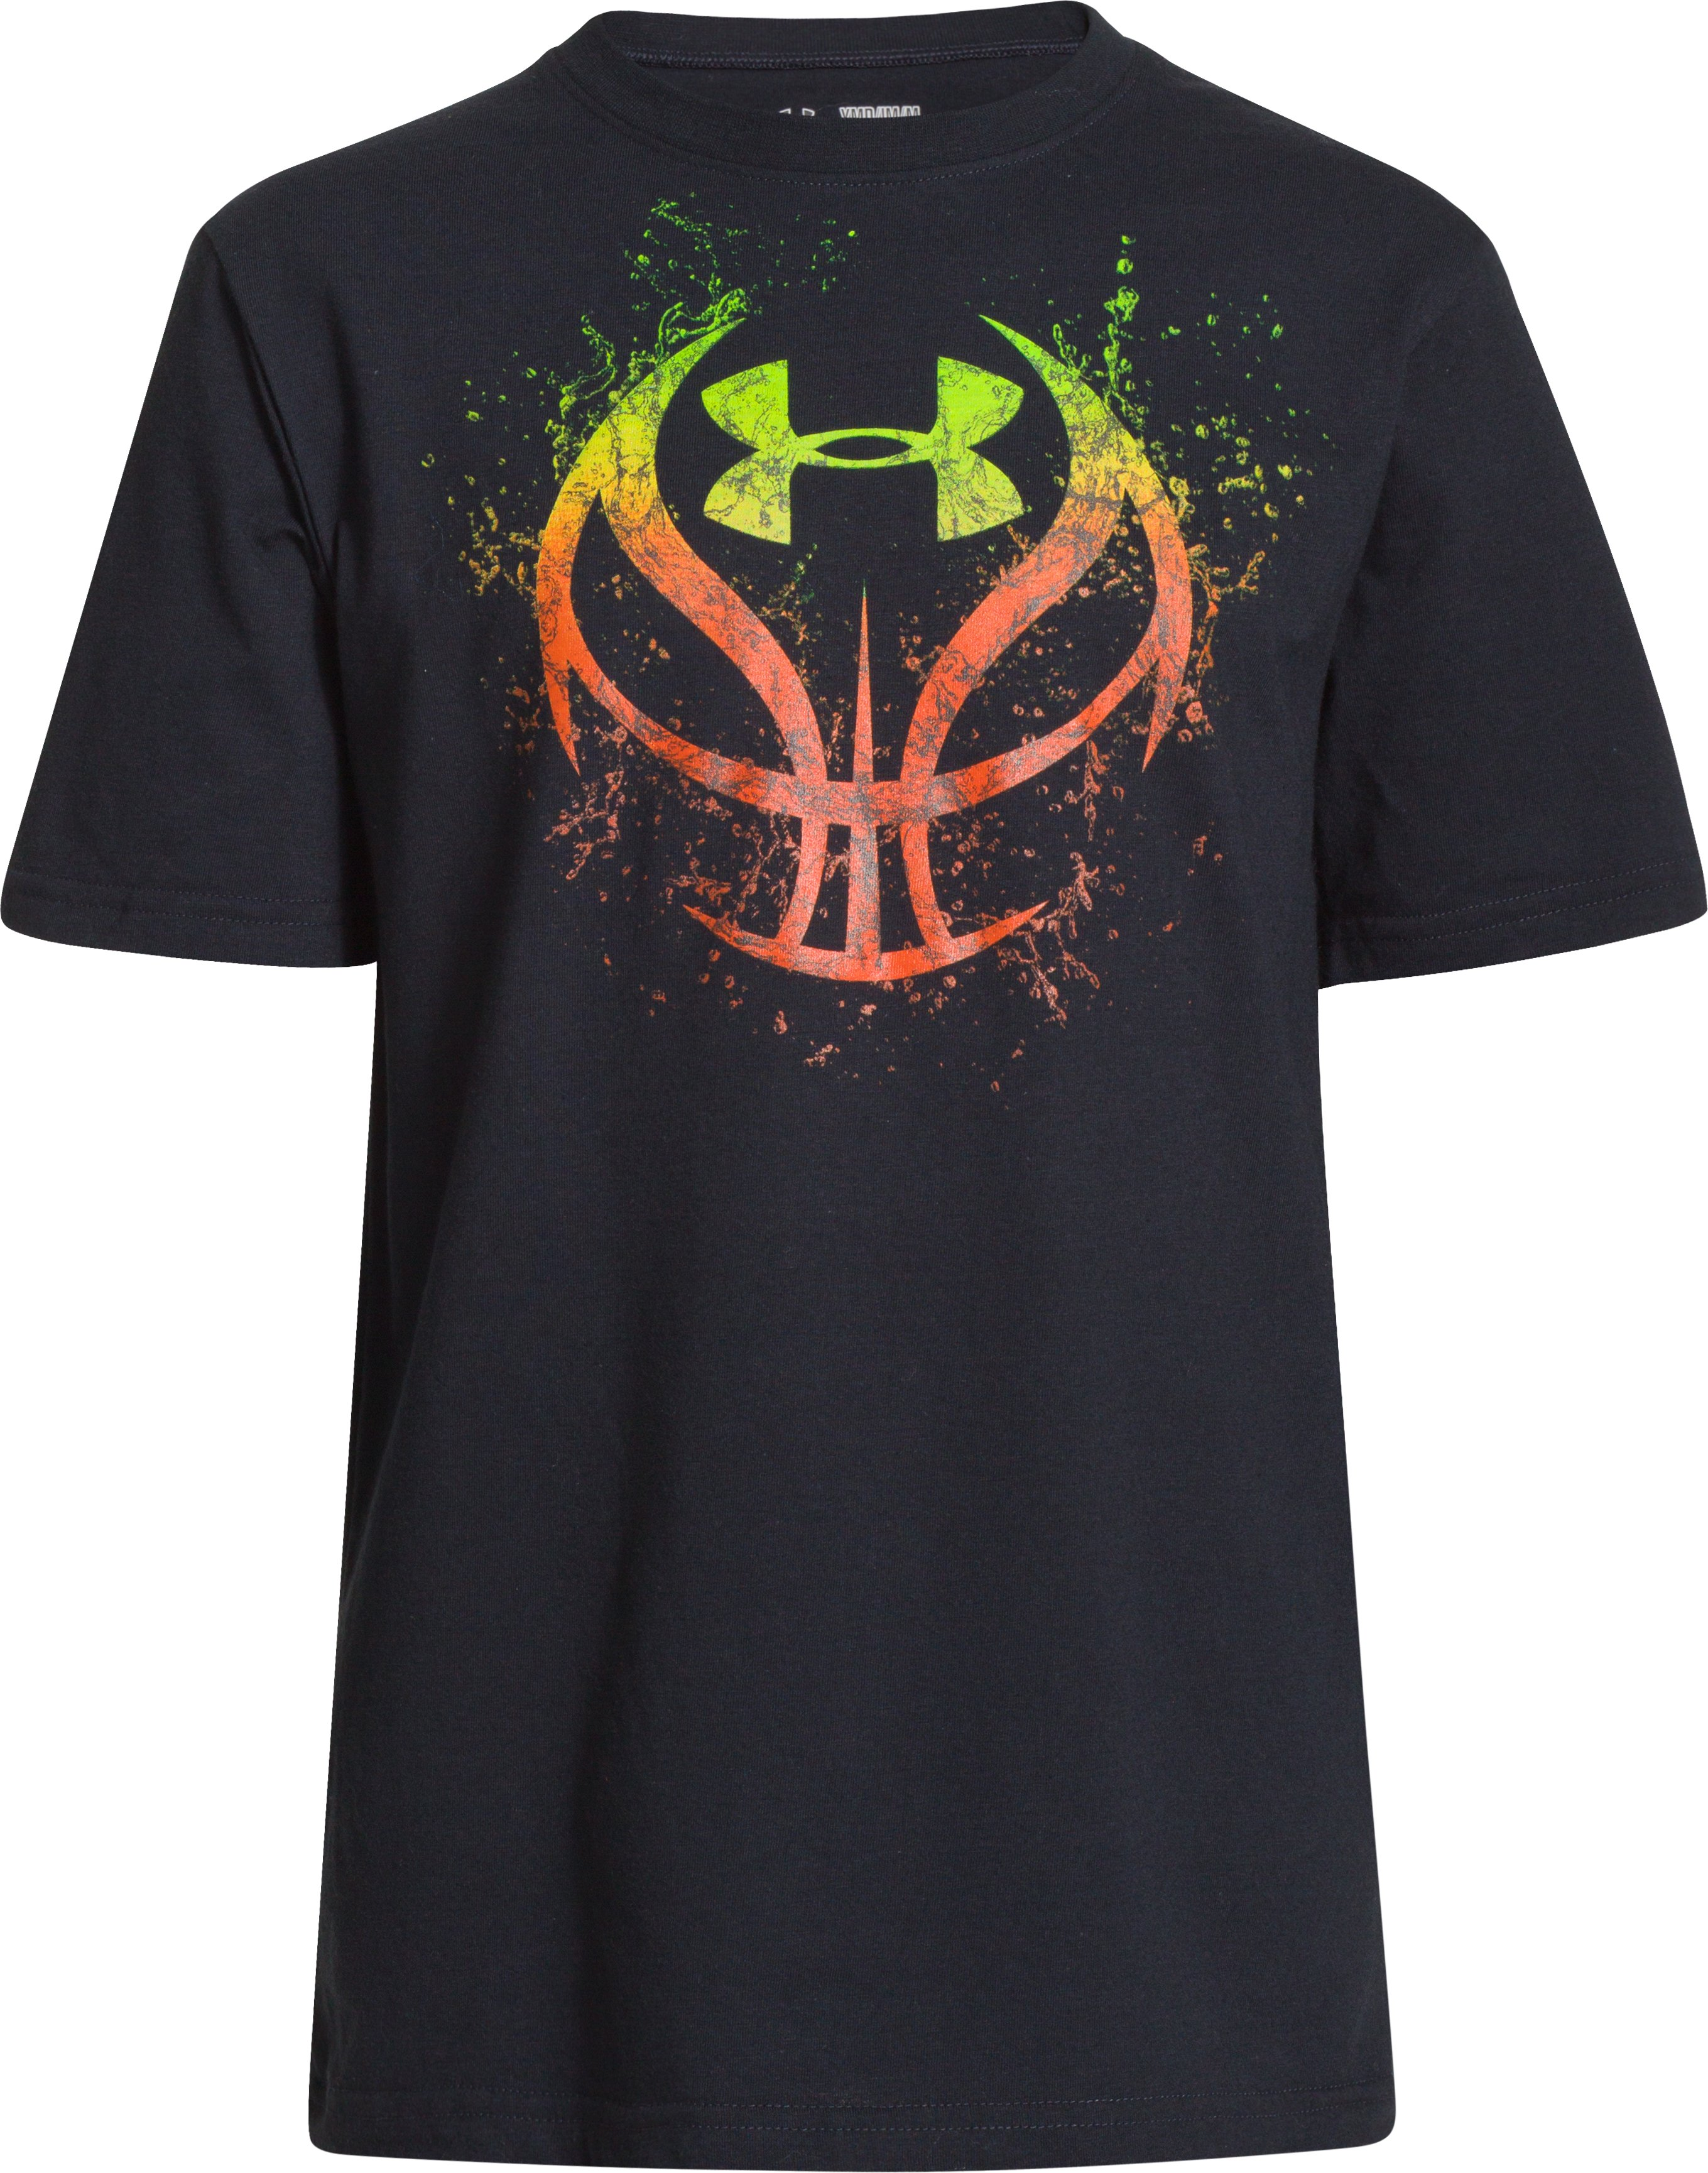 Boys' UA Basketball Splash T-Shirt, Black